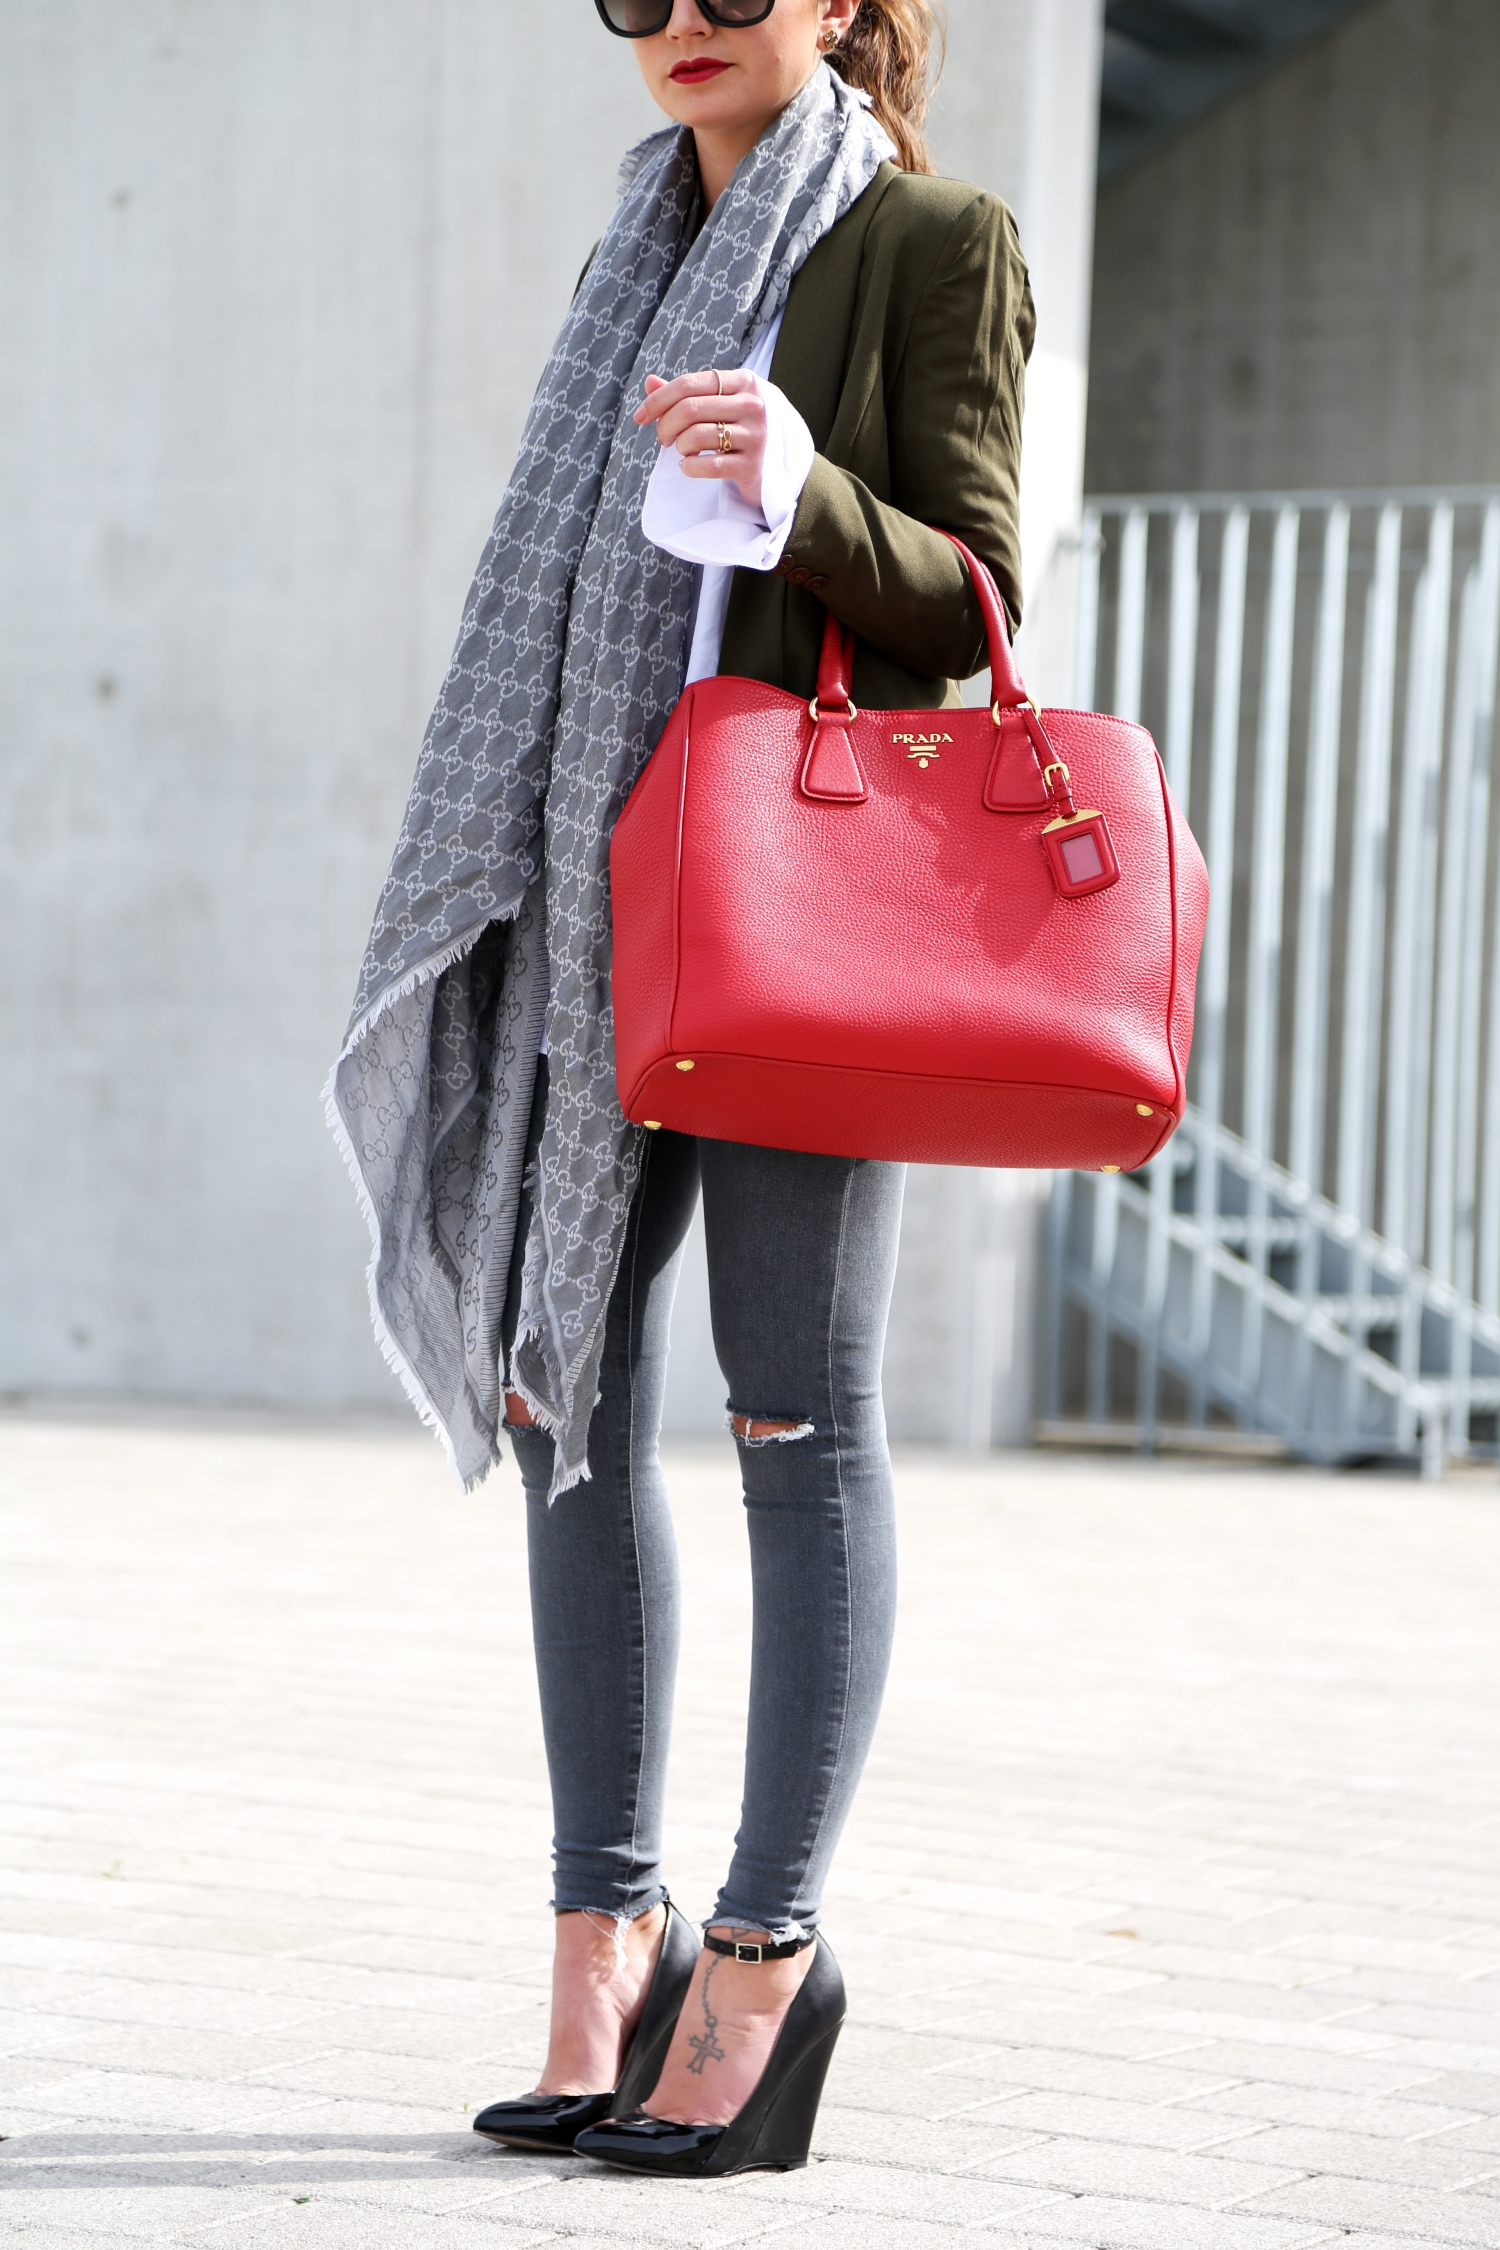 outfit-fashionhippieloves-prada-bag-details-wedges